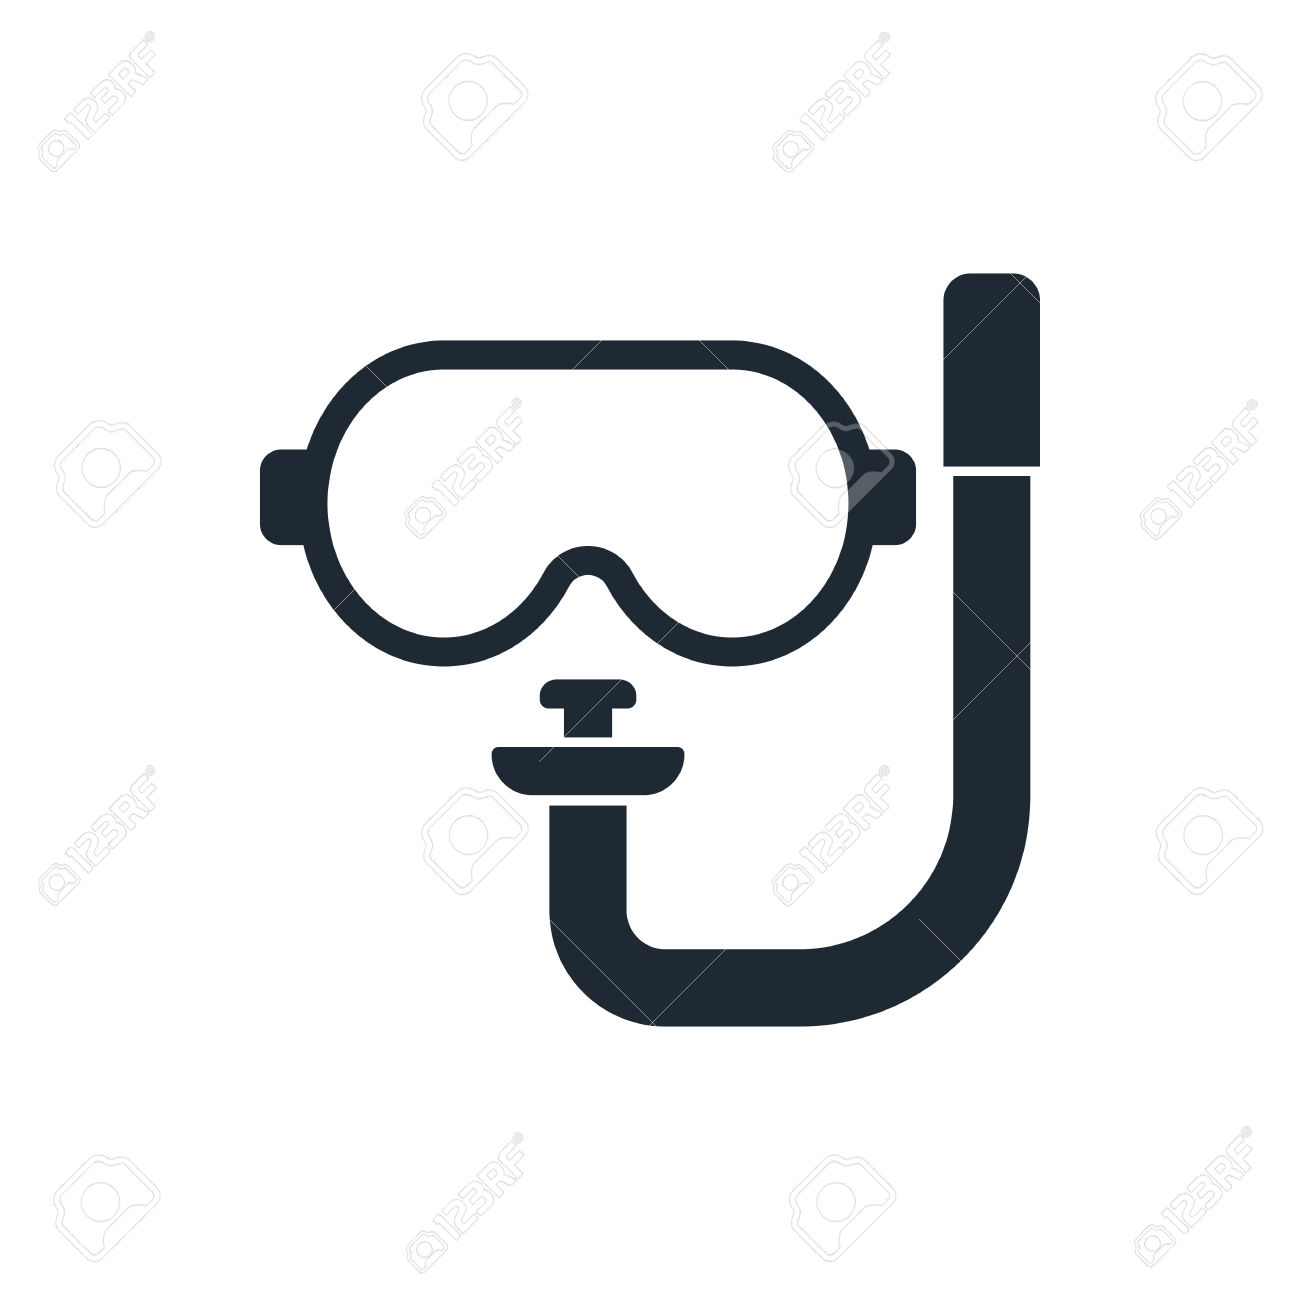 Dive mask clipart.